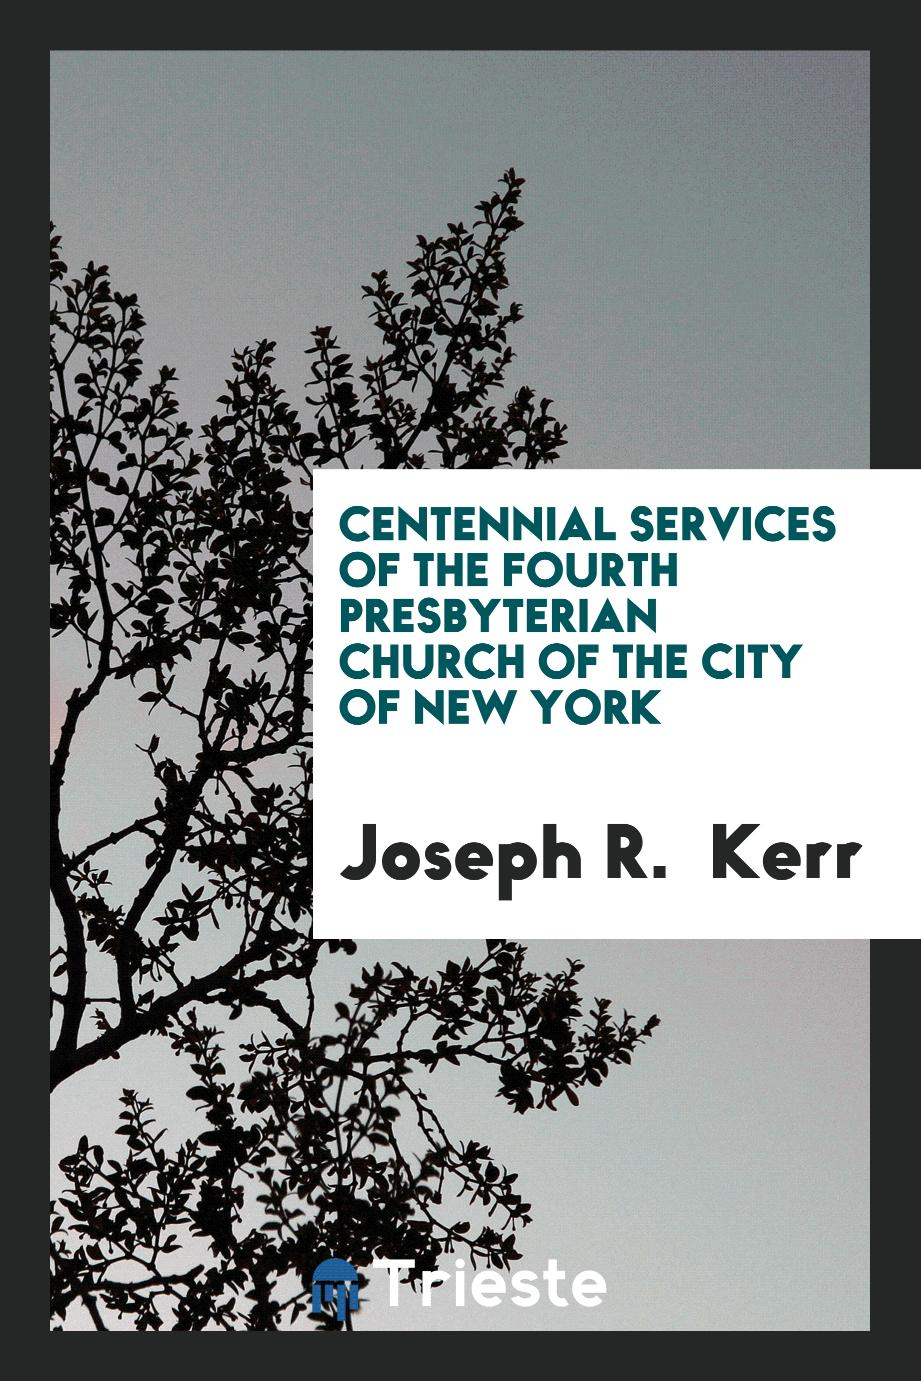 Centennial services of the Fourth Presbyterian Church of the city of New York